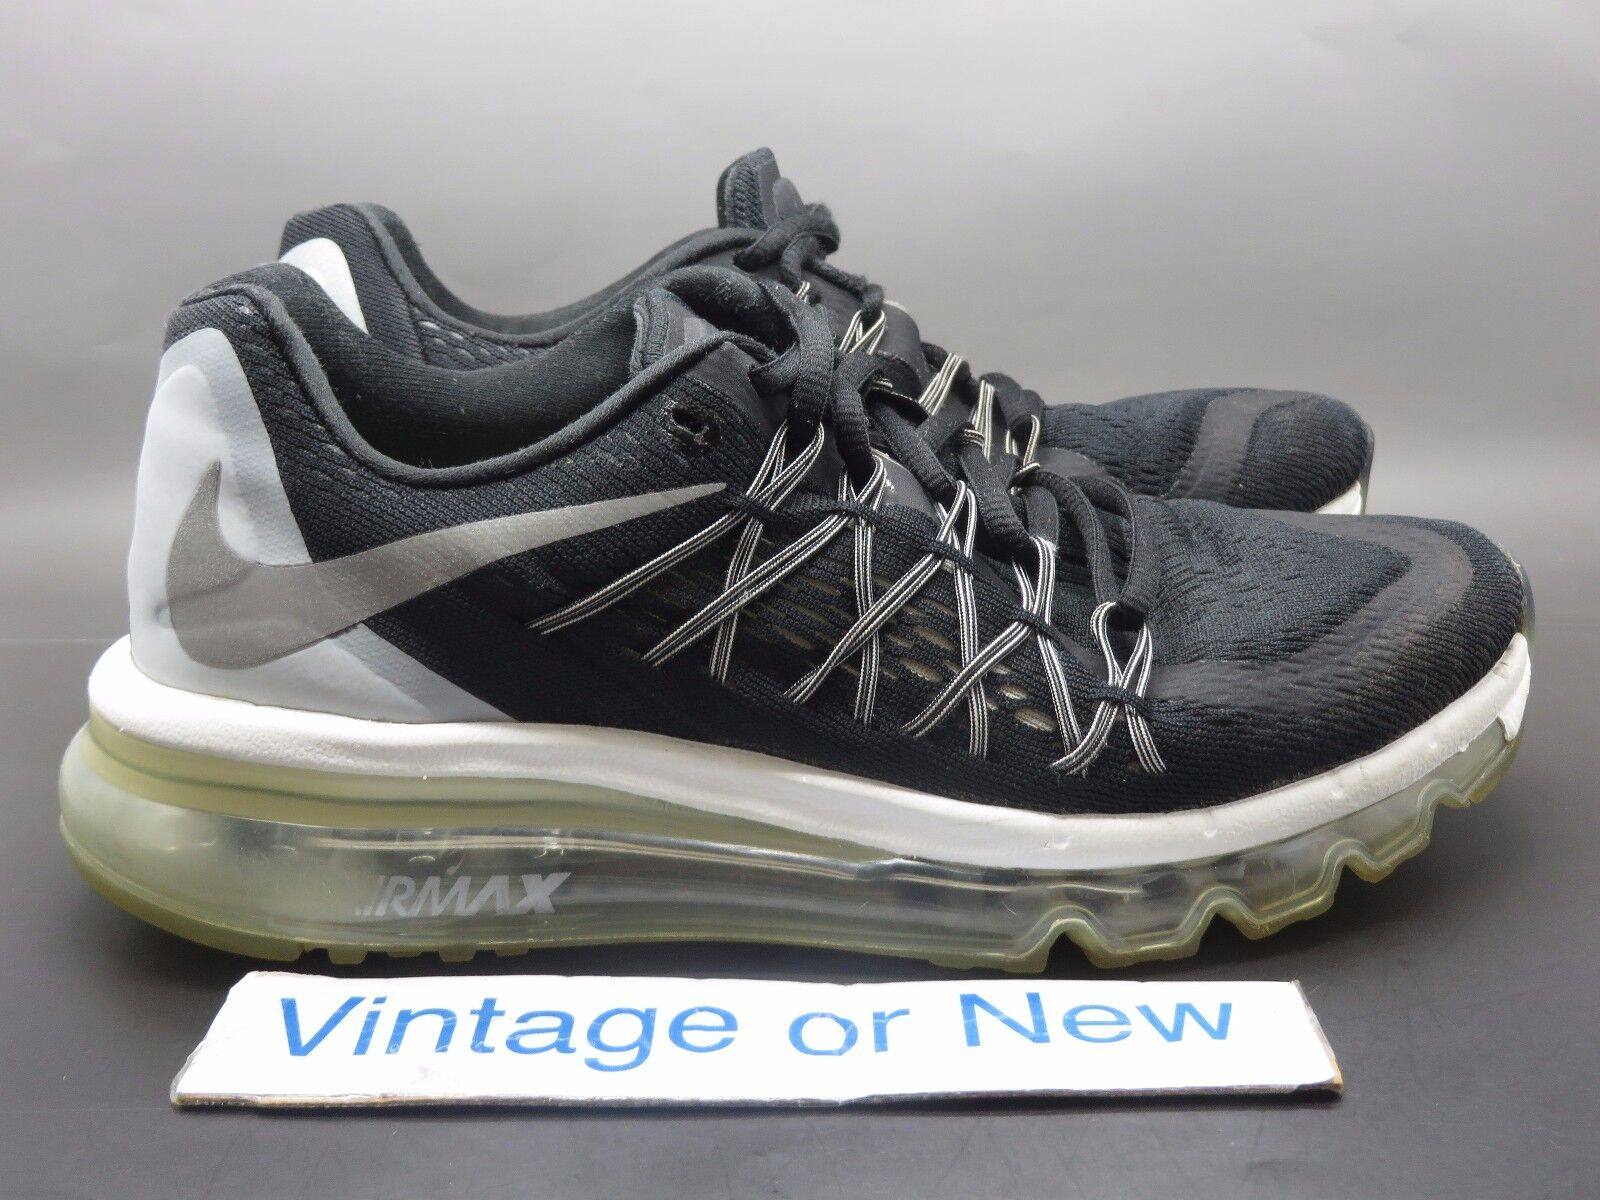 Women's Nike Air Max 2015 Black Reflective Silver White Running Shoes sz 7